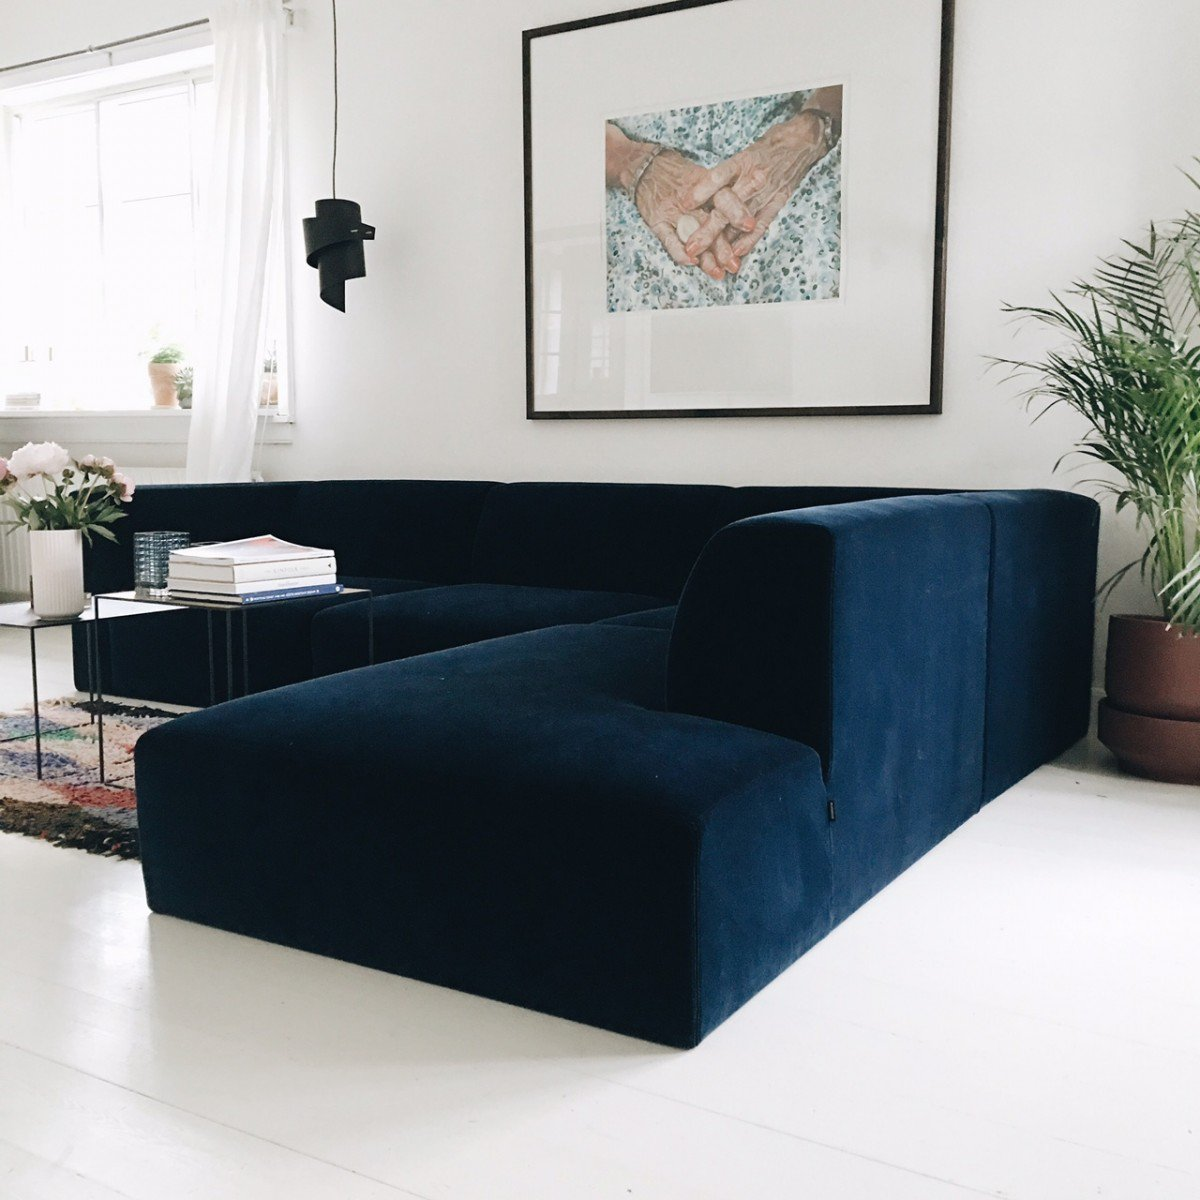 MY velvet dream sofa... Finally